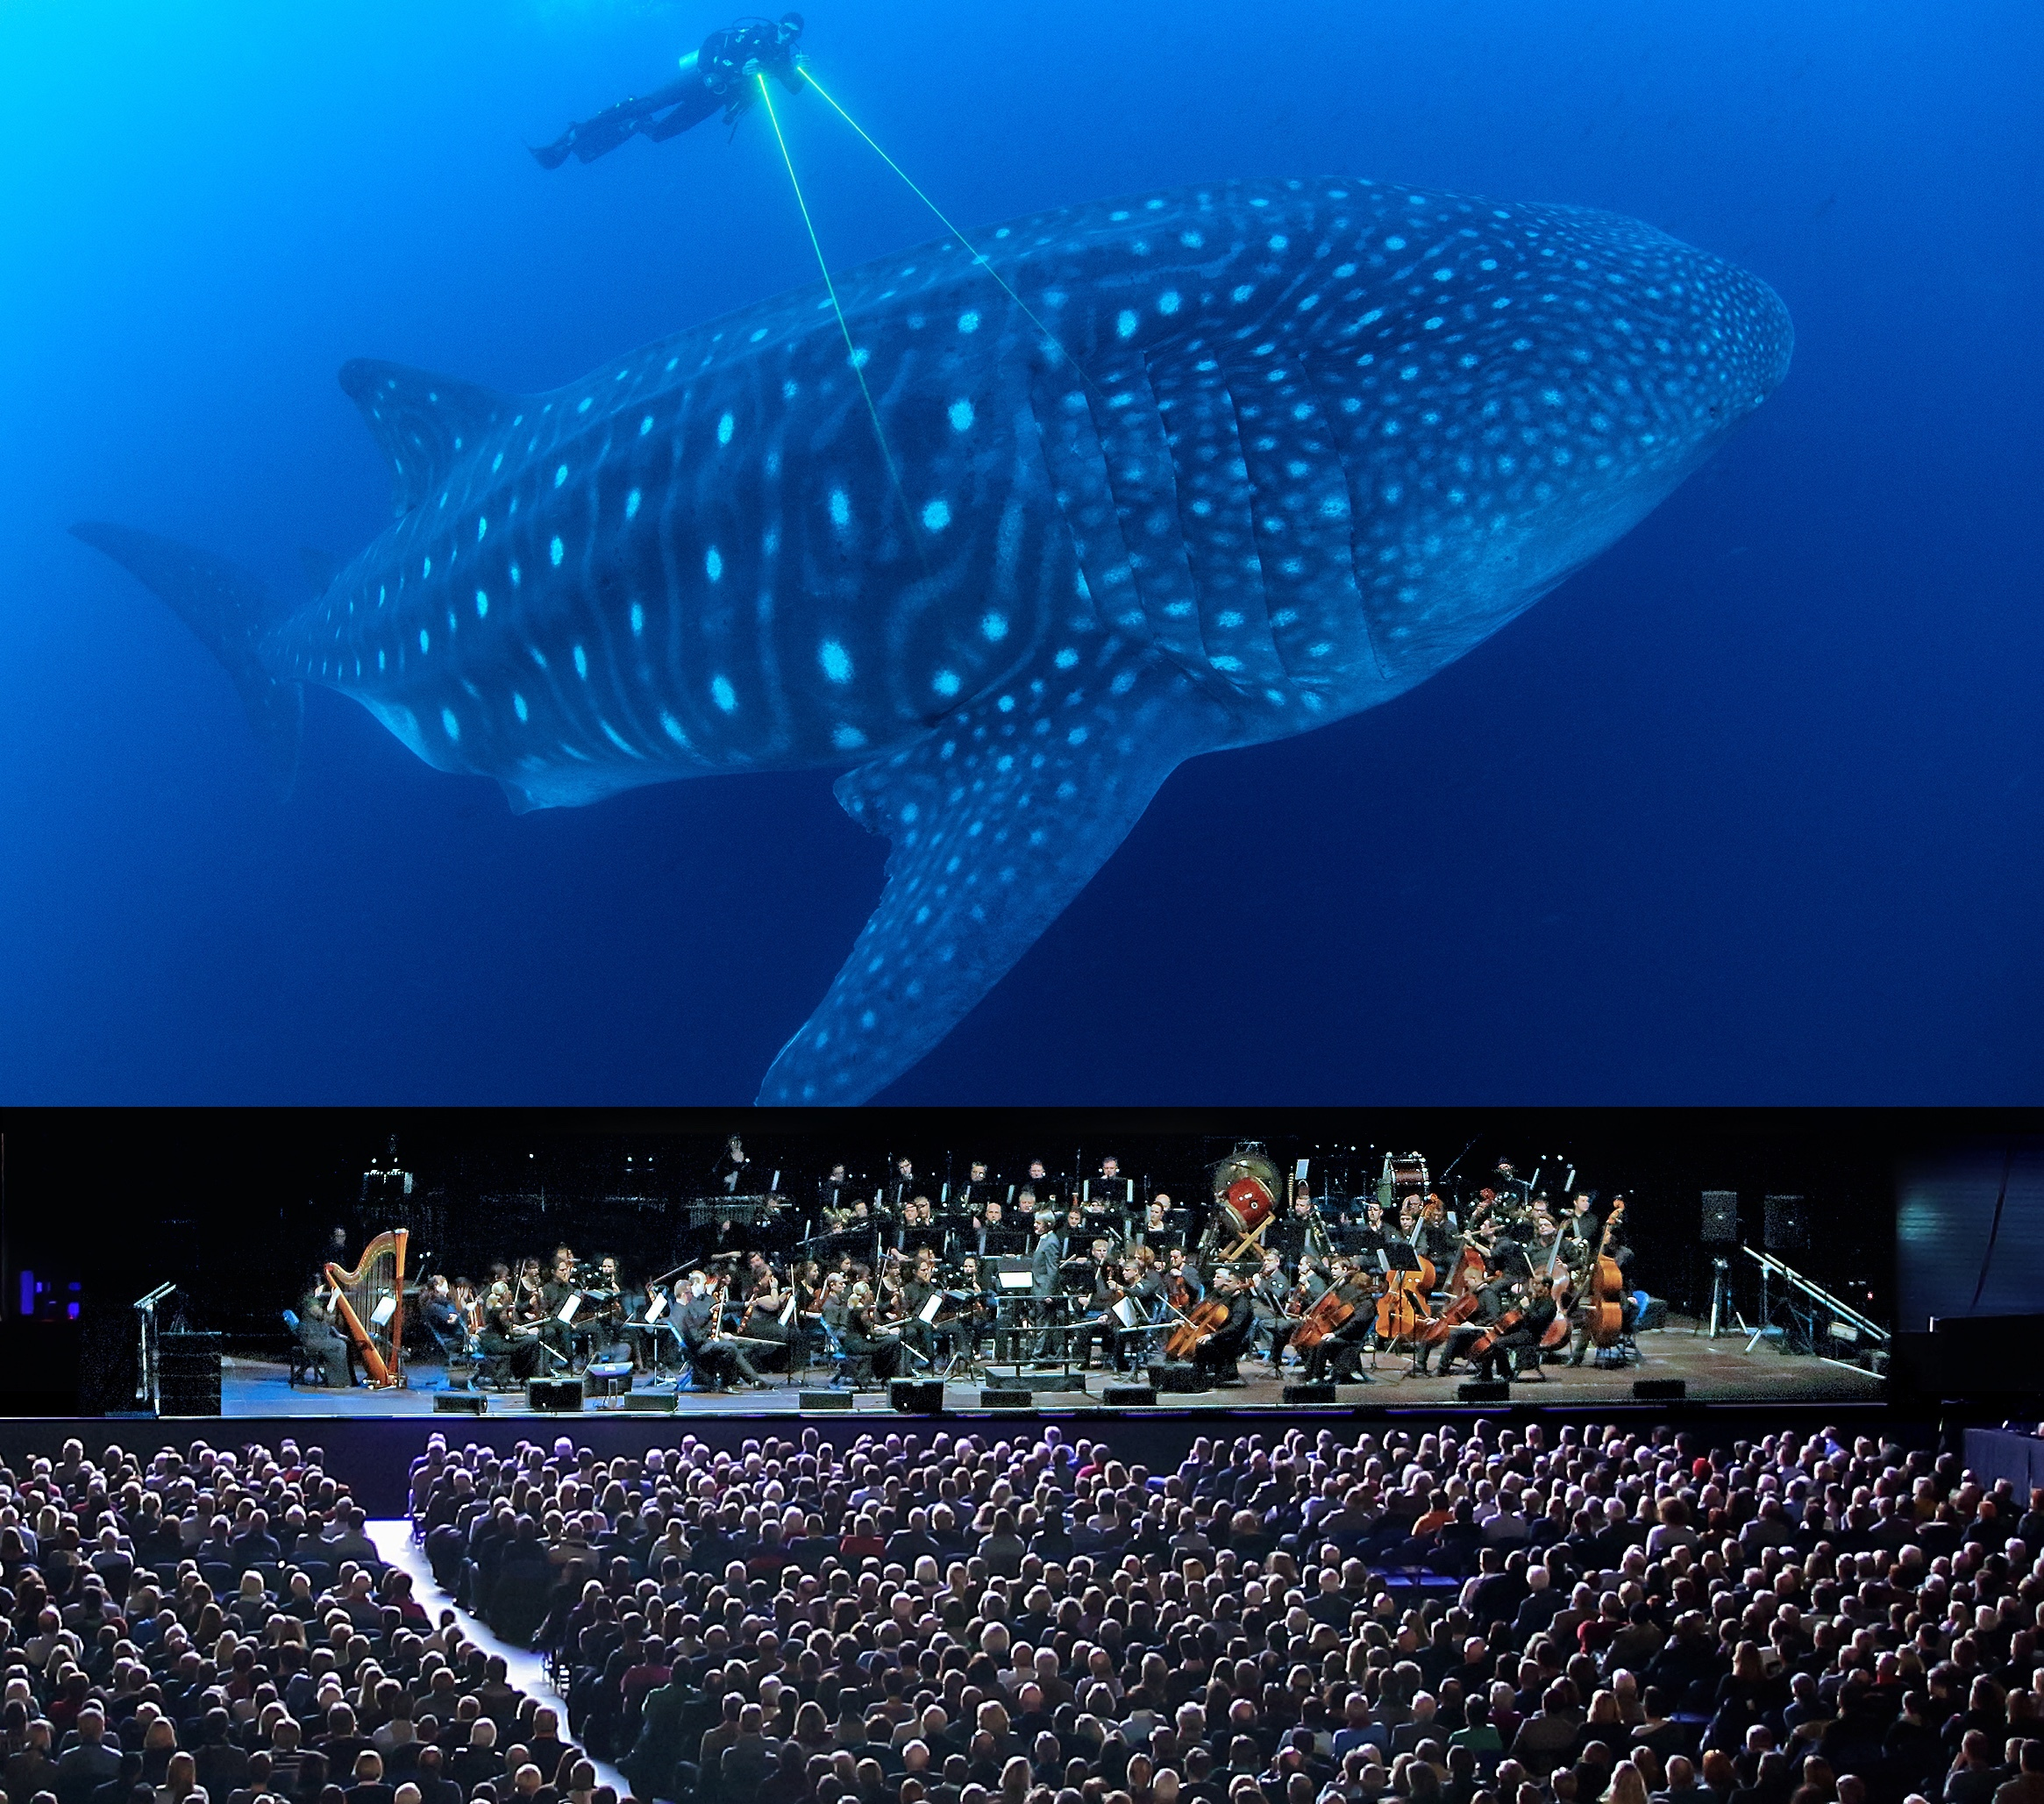 REVIEW: Blue Planet 11 Live in Concert - BIC